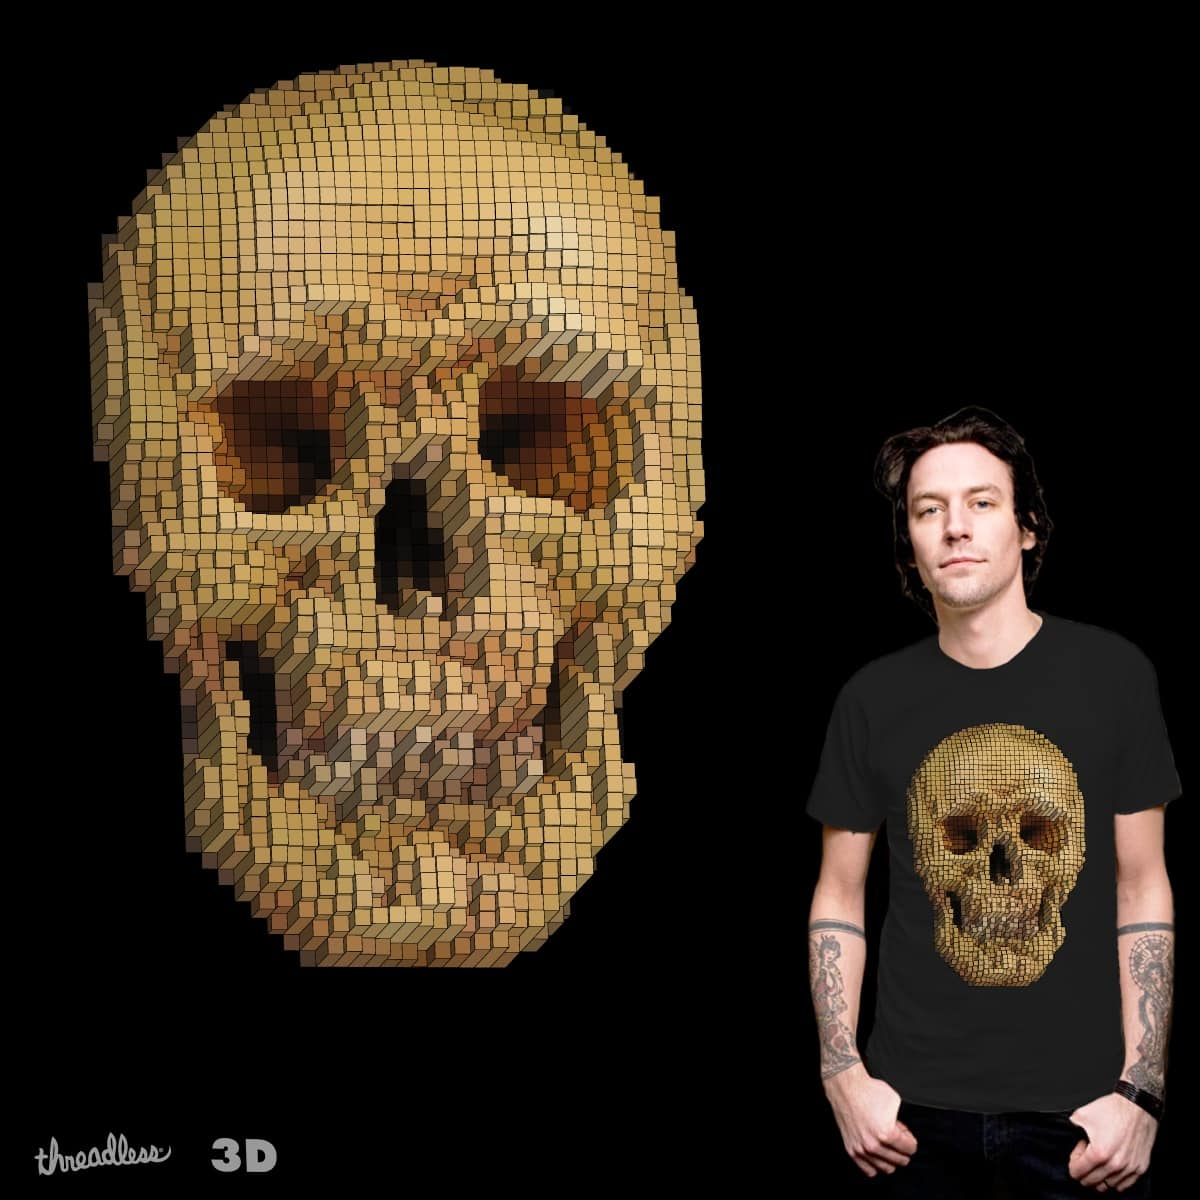 skull 3d by airobit on Threadless